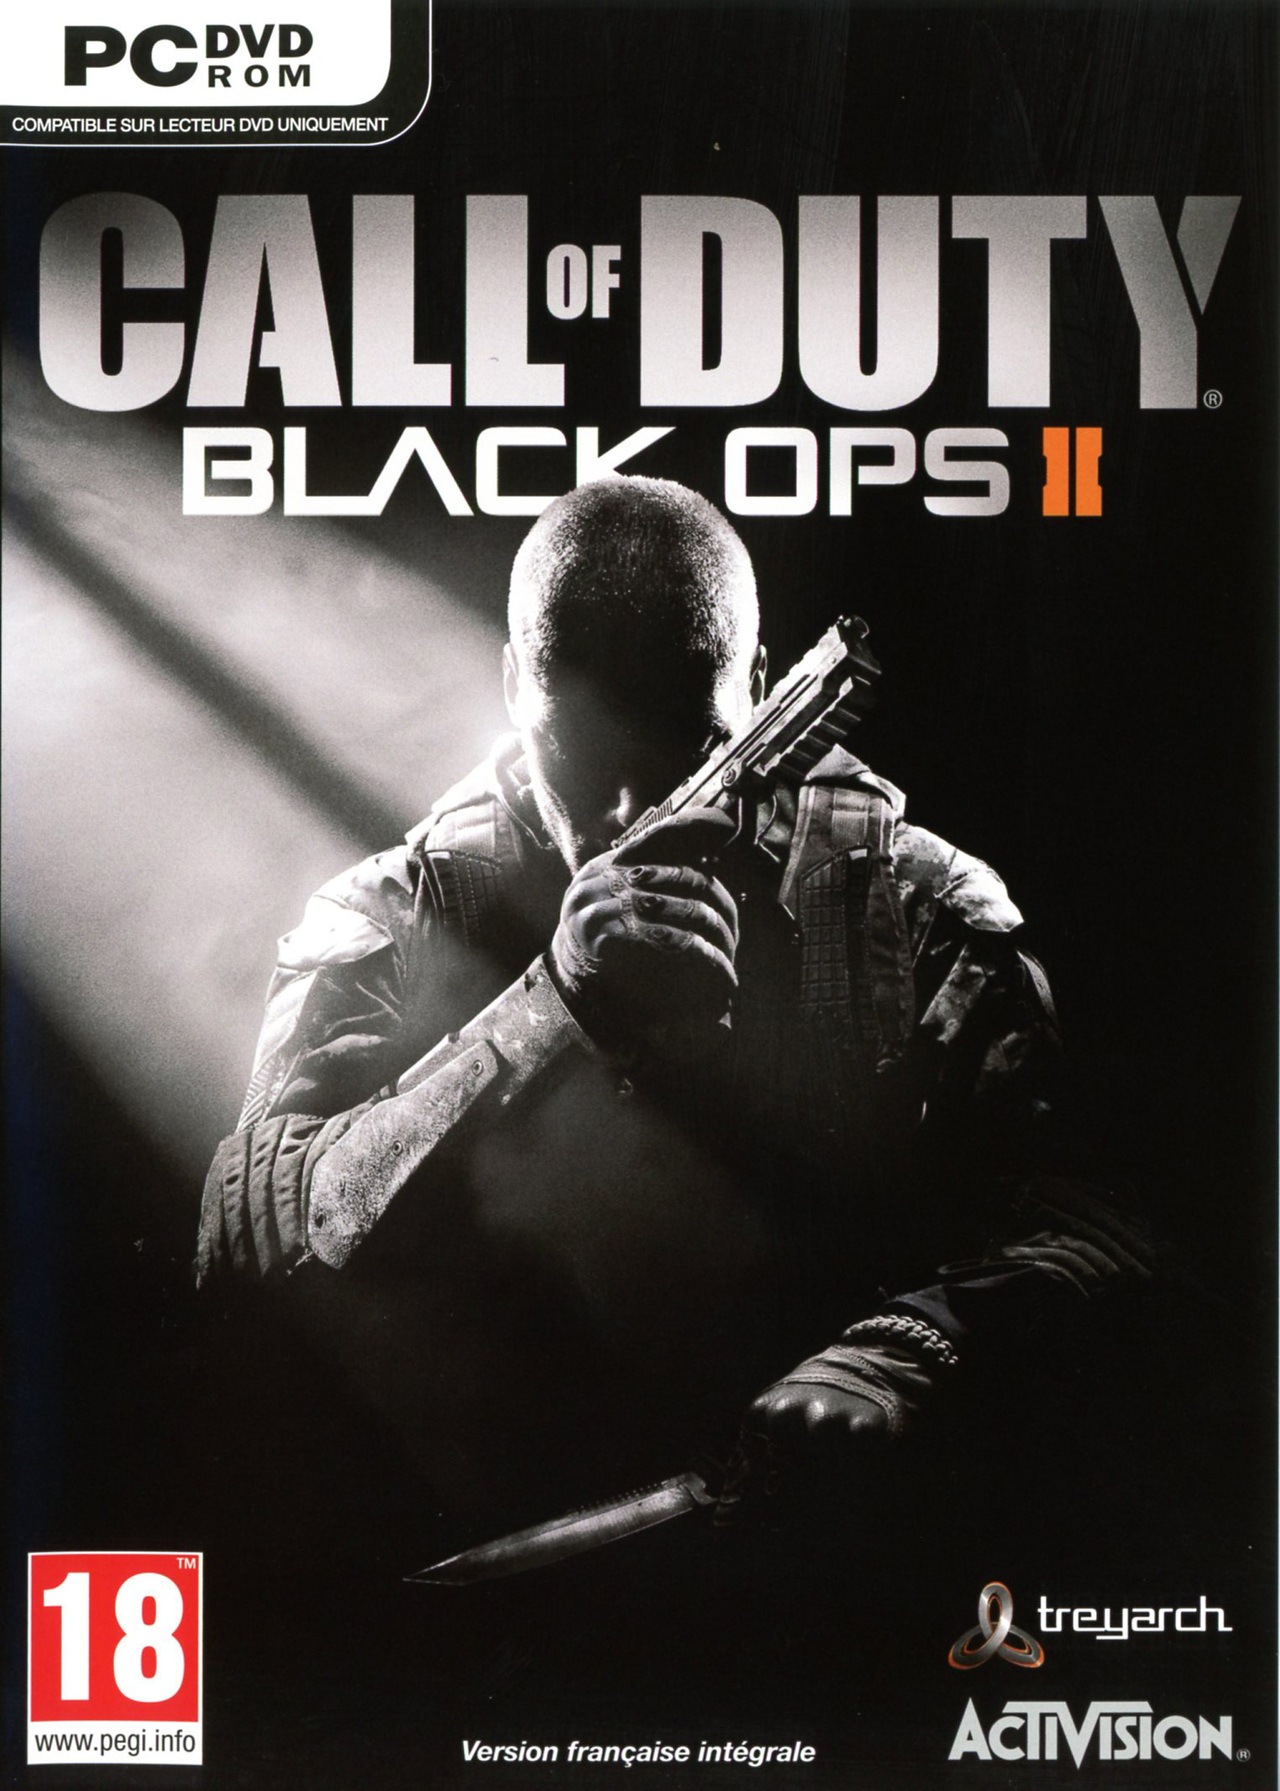 Call of Duty : Black Ops II  [PC | MULTI] FULL UNLOCKED + CRACK + PATCH FR(Exclue)